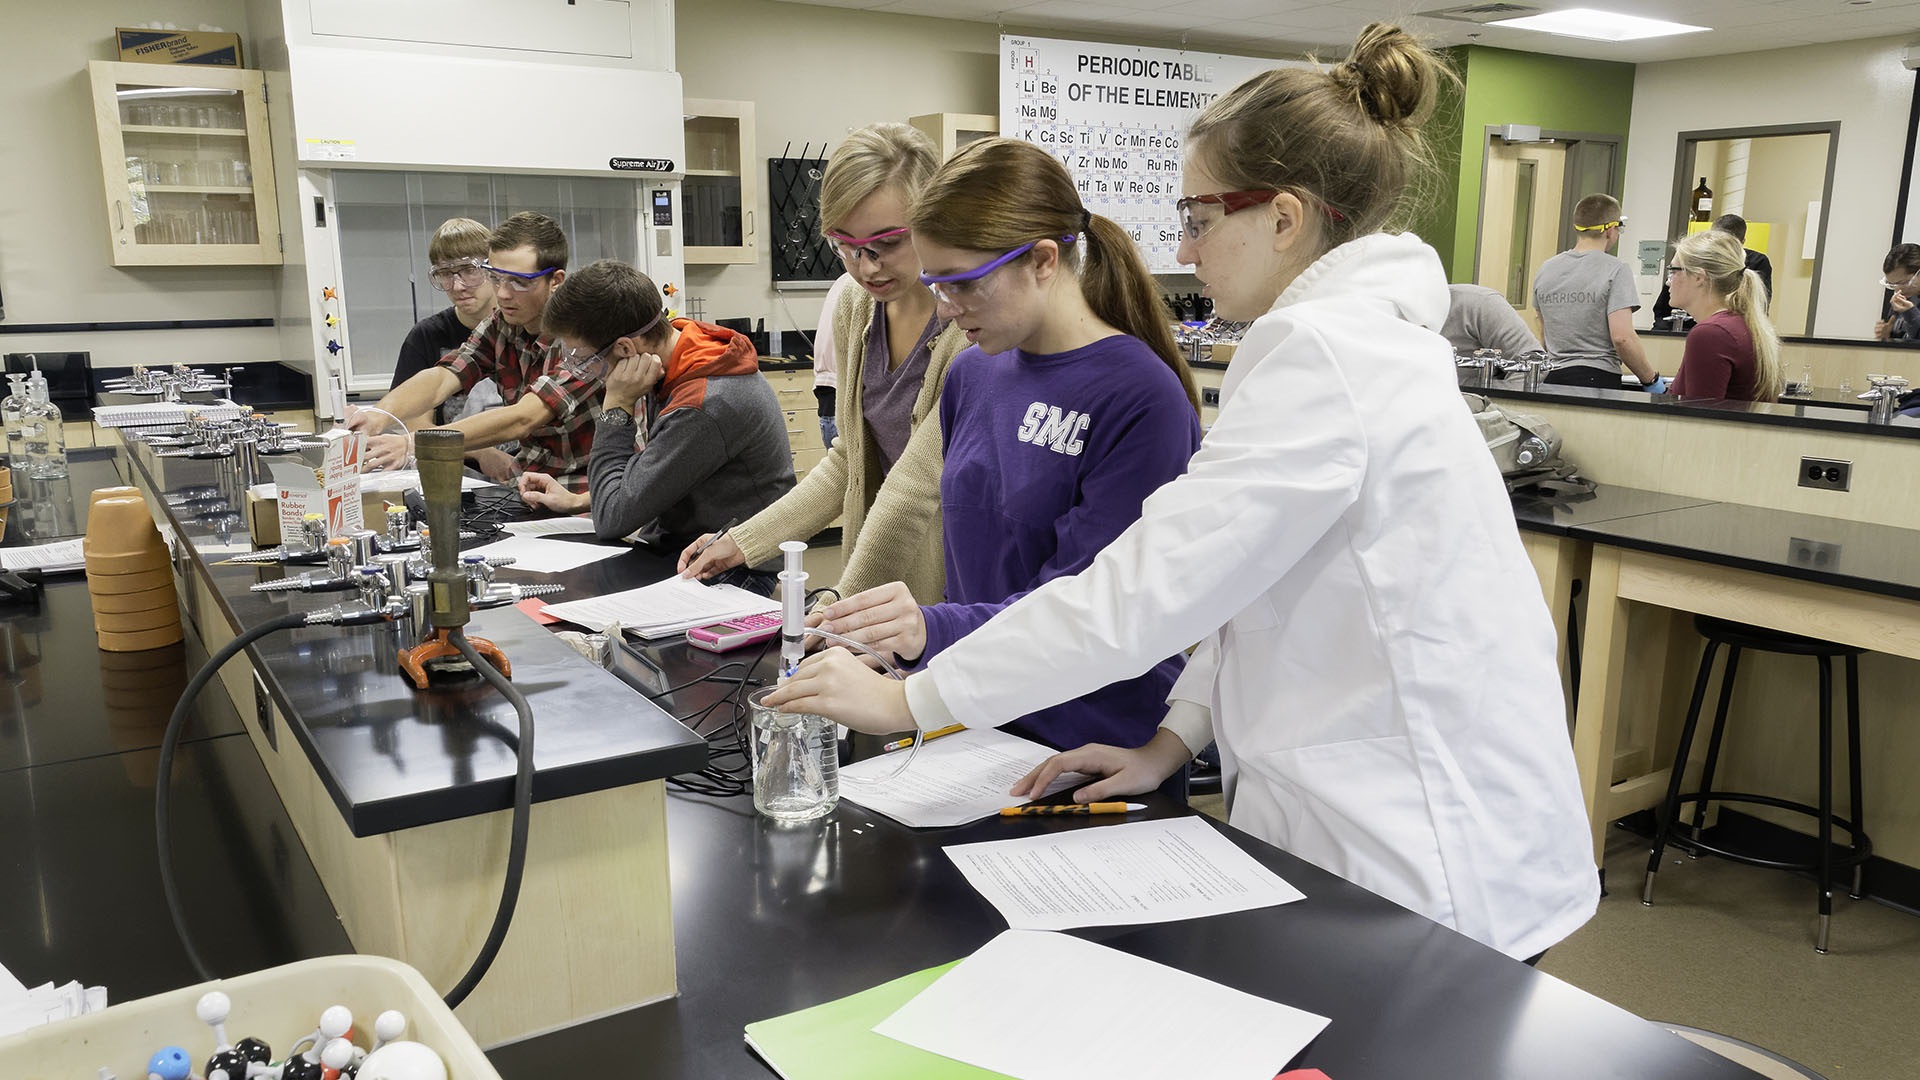 Students performing an experiment in a lab